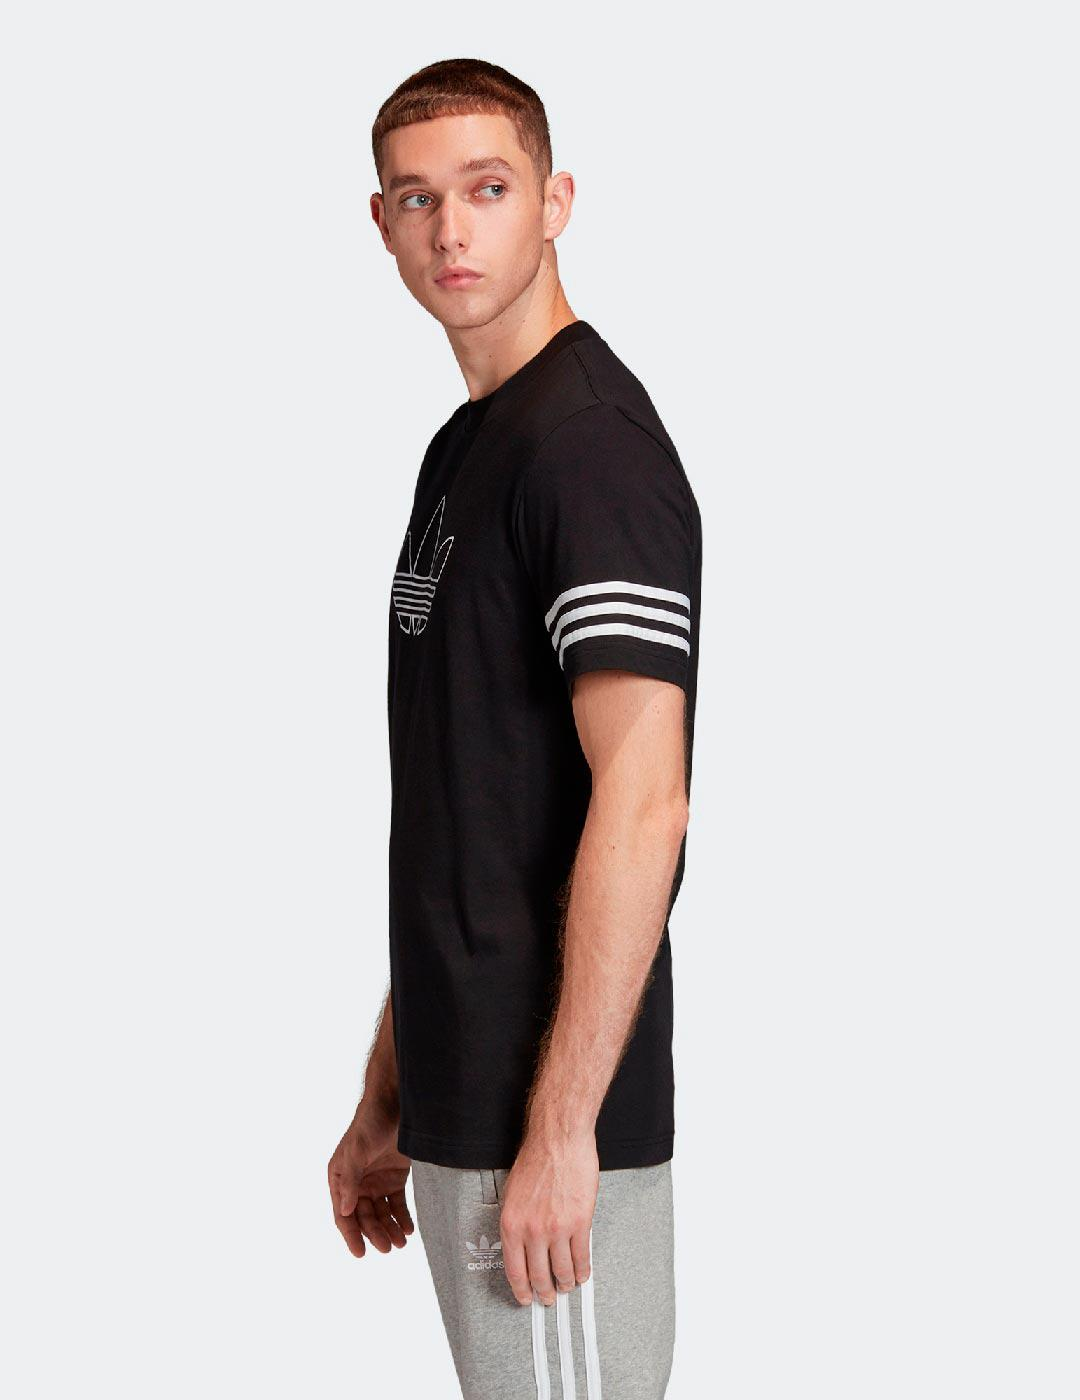 Camiseta OUTLINE - Negro